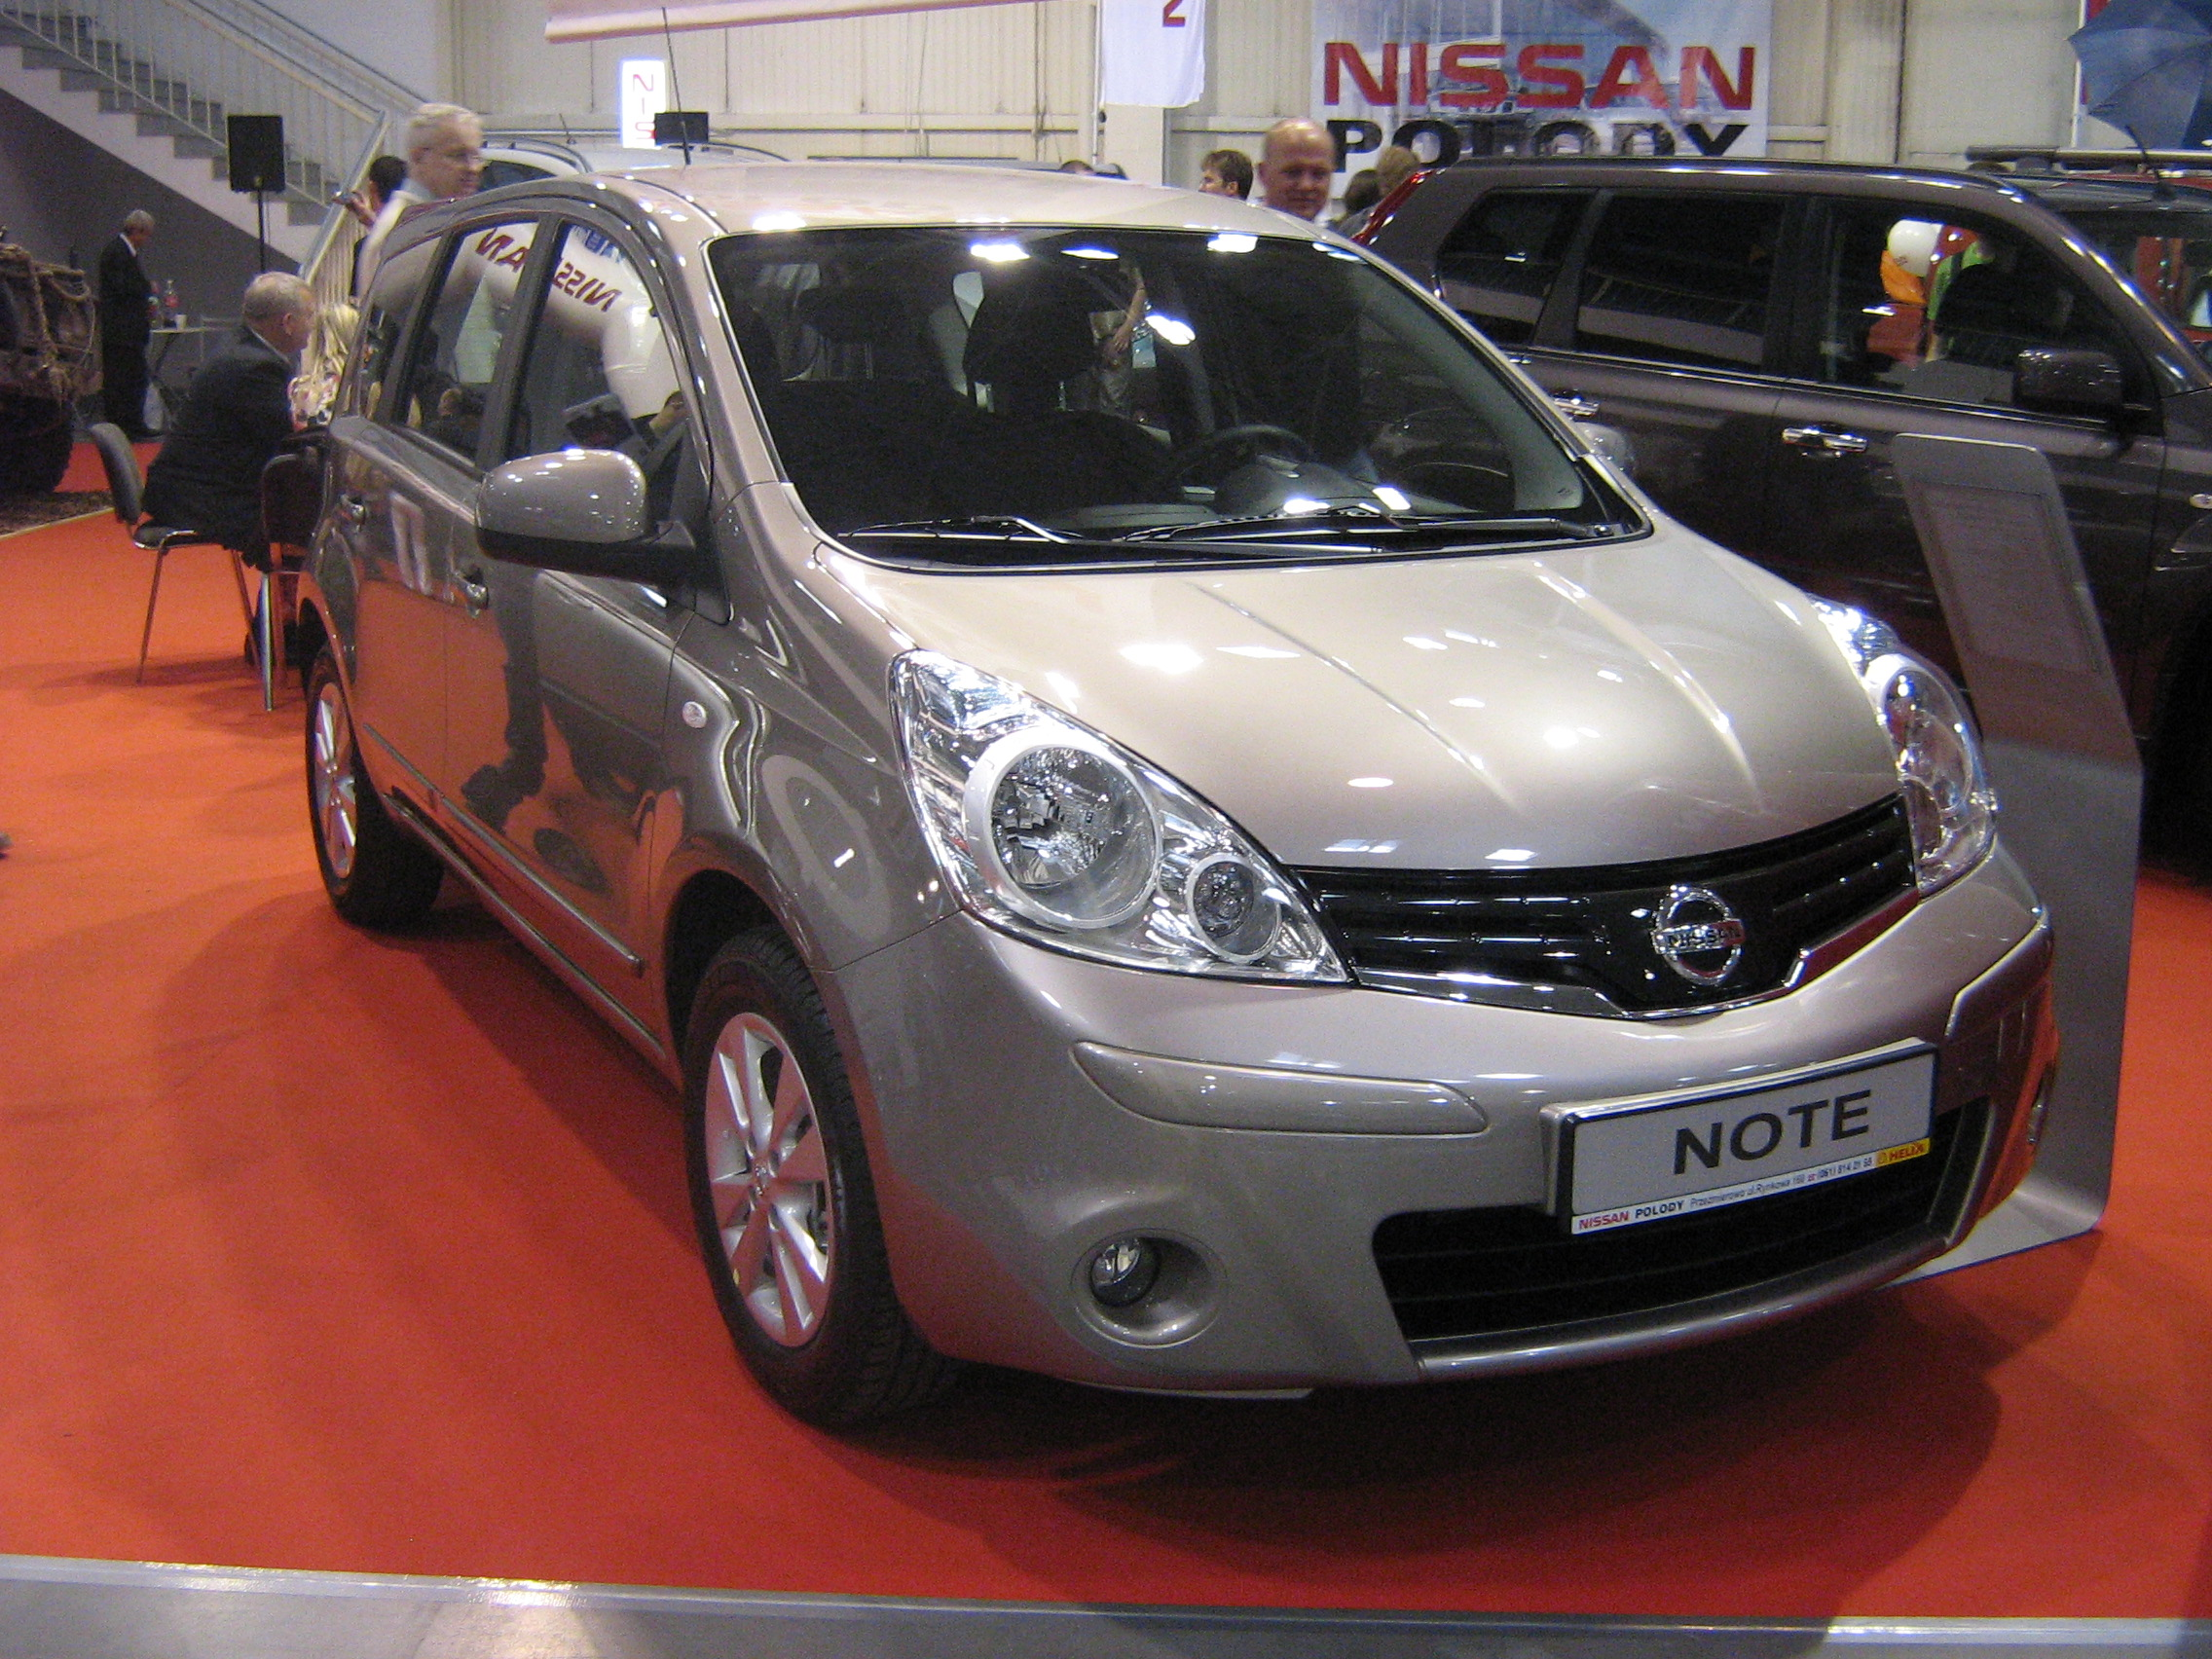 2009 Nissan Note #4